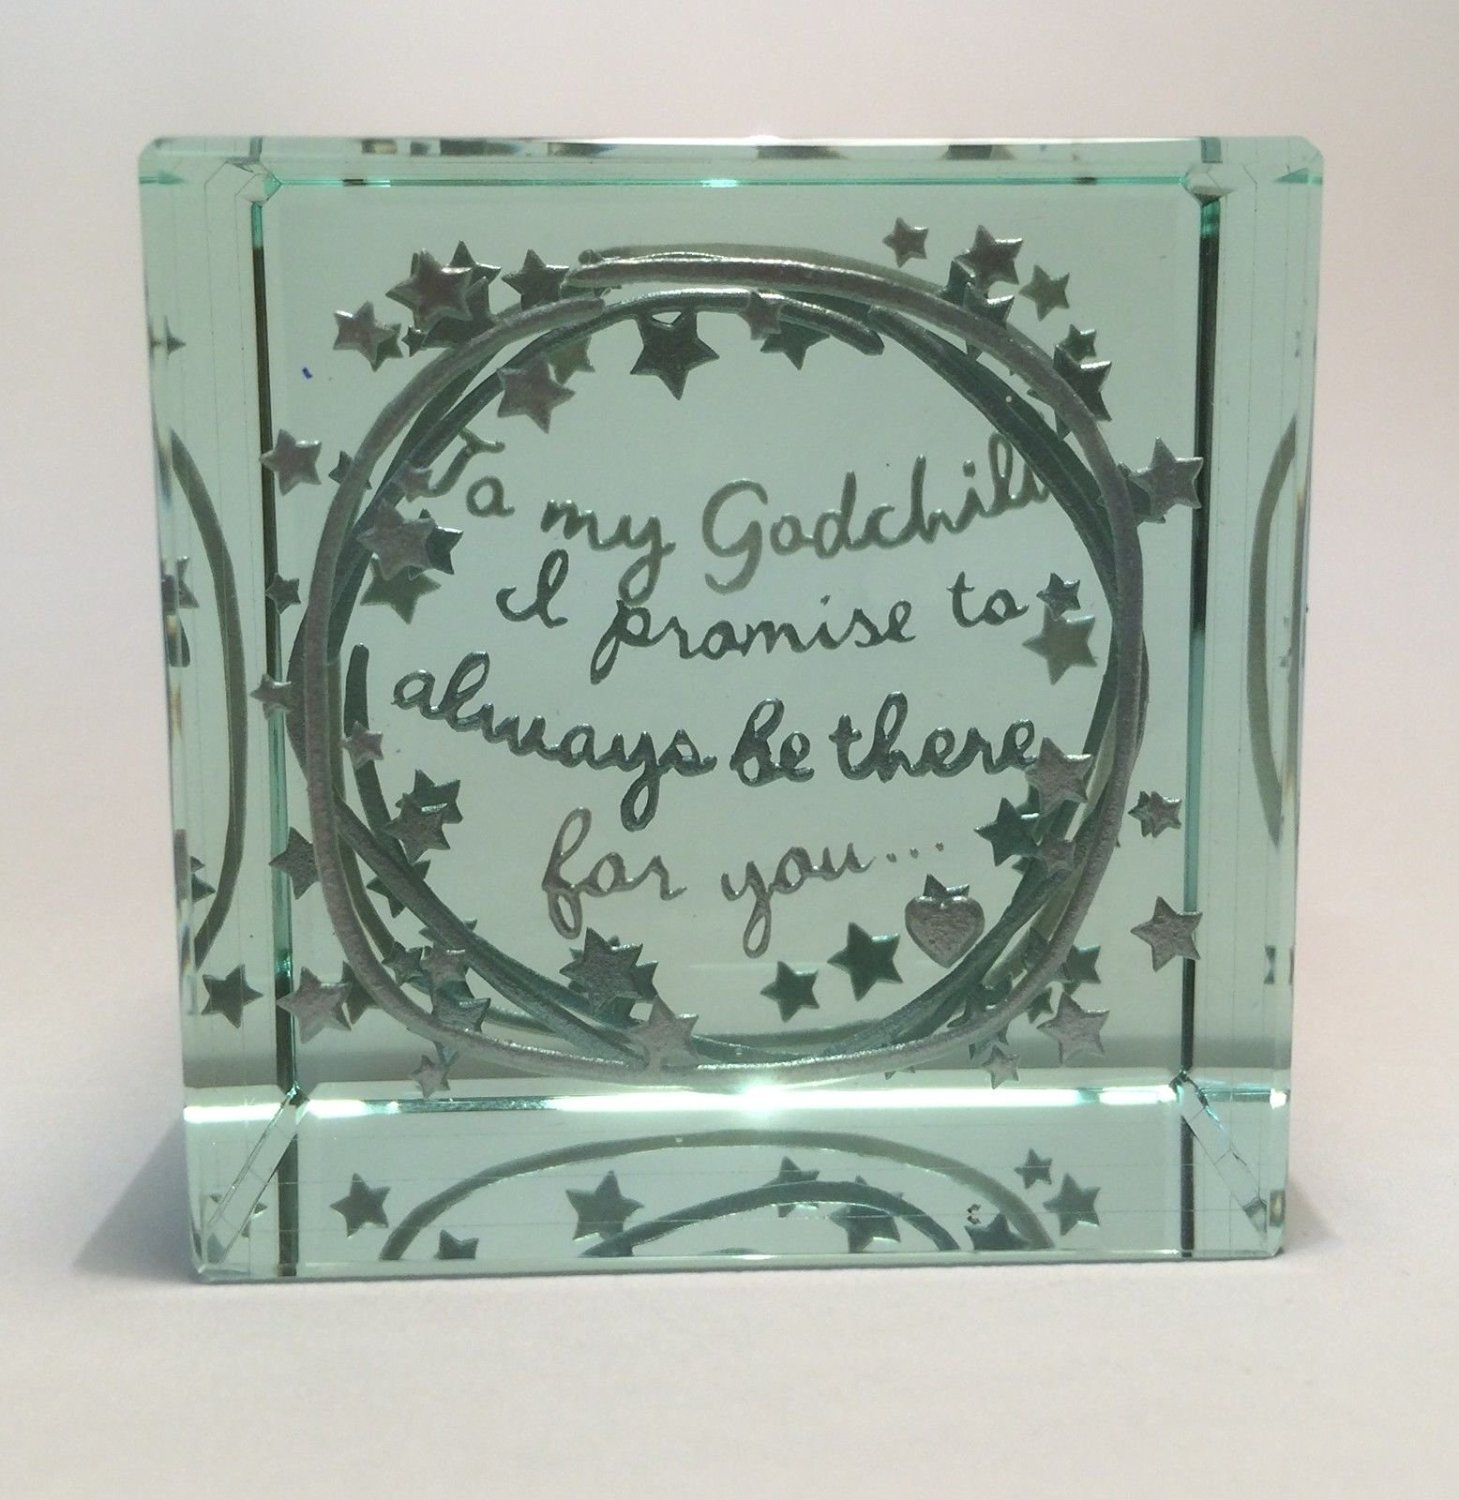 Spaceform Quality Layered Paperweight Christening Gift Ideas Godchild